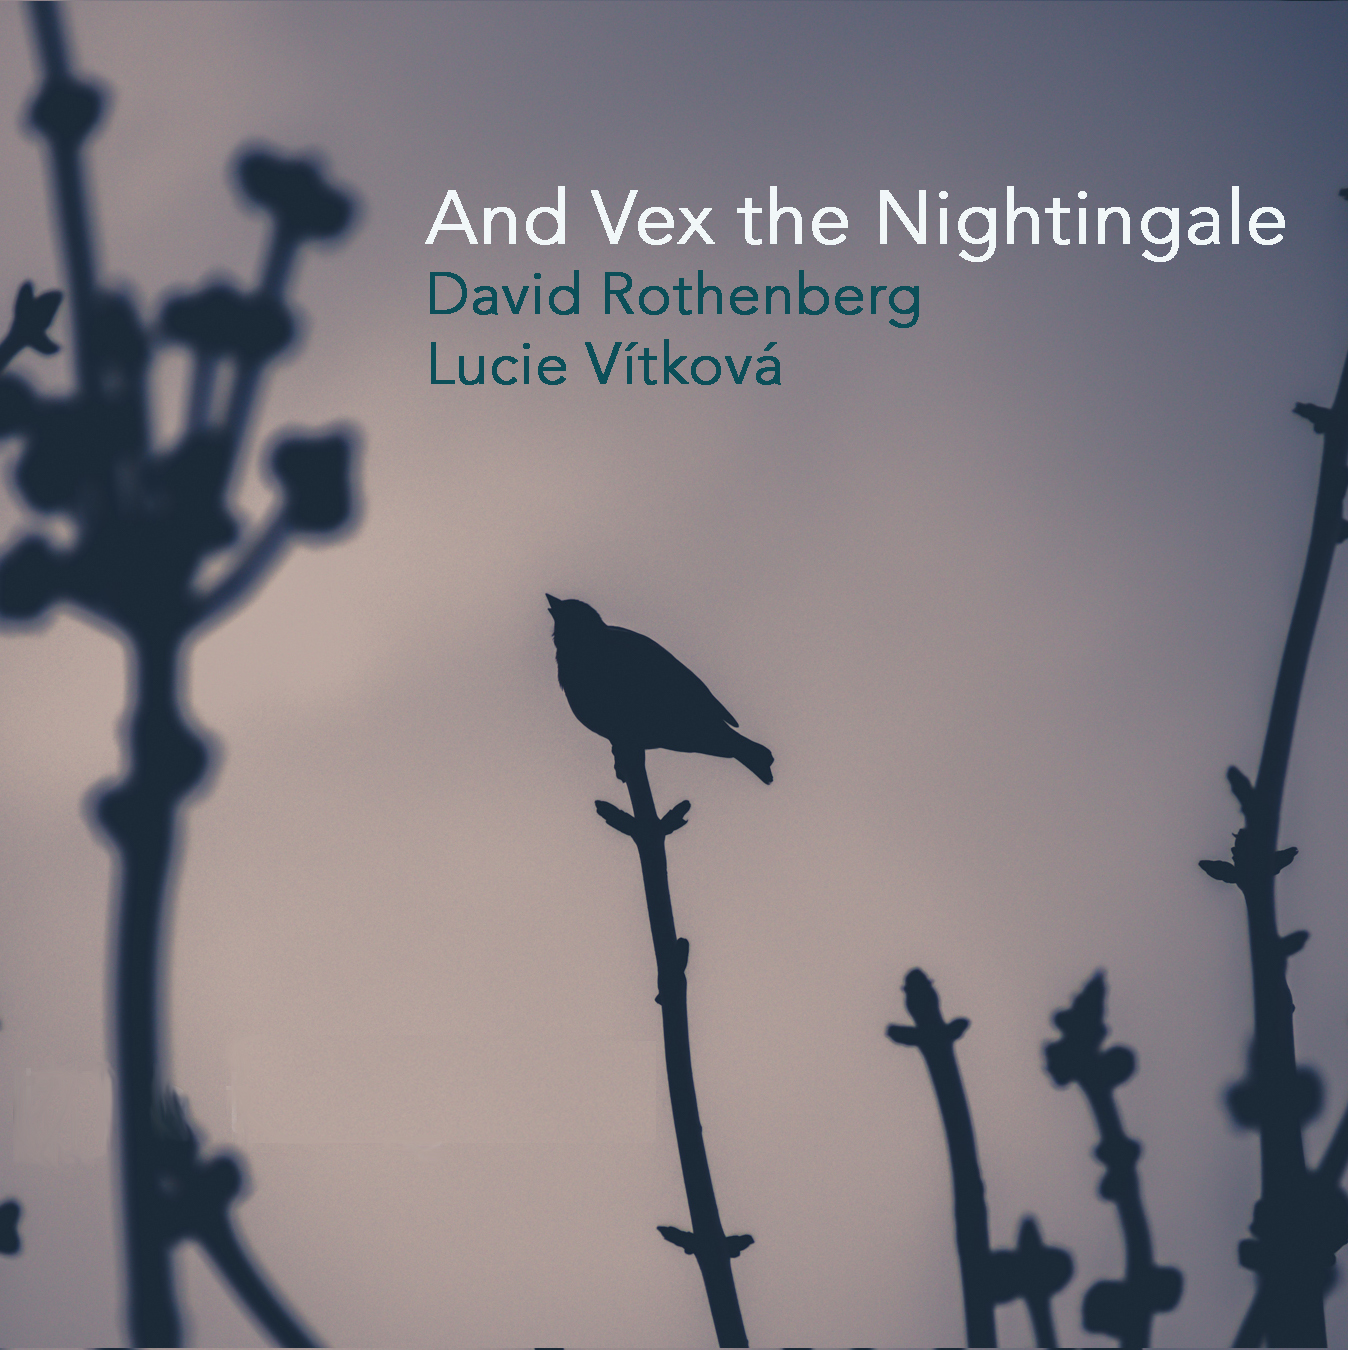 And Vex the Nightingale - David Rothenberg and Lucie Vítková. A single 43 minute long performance from the Treptower Park at midnight—What two people and one bird can do.